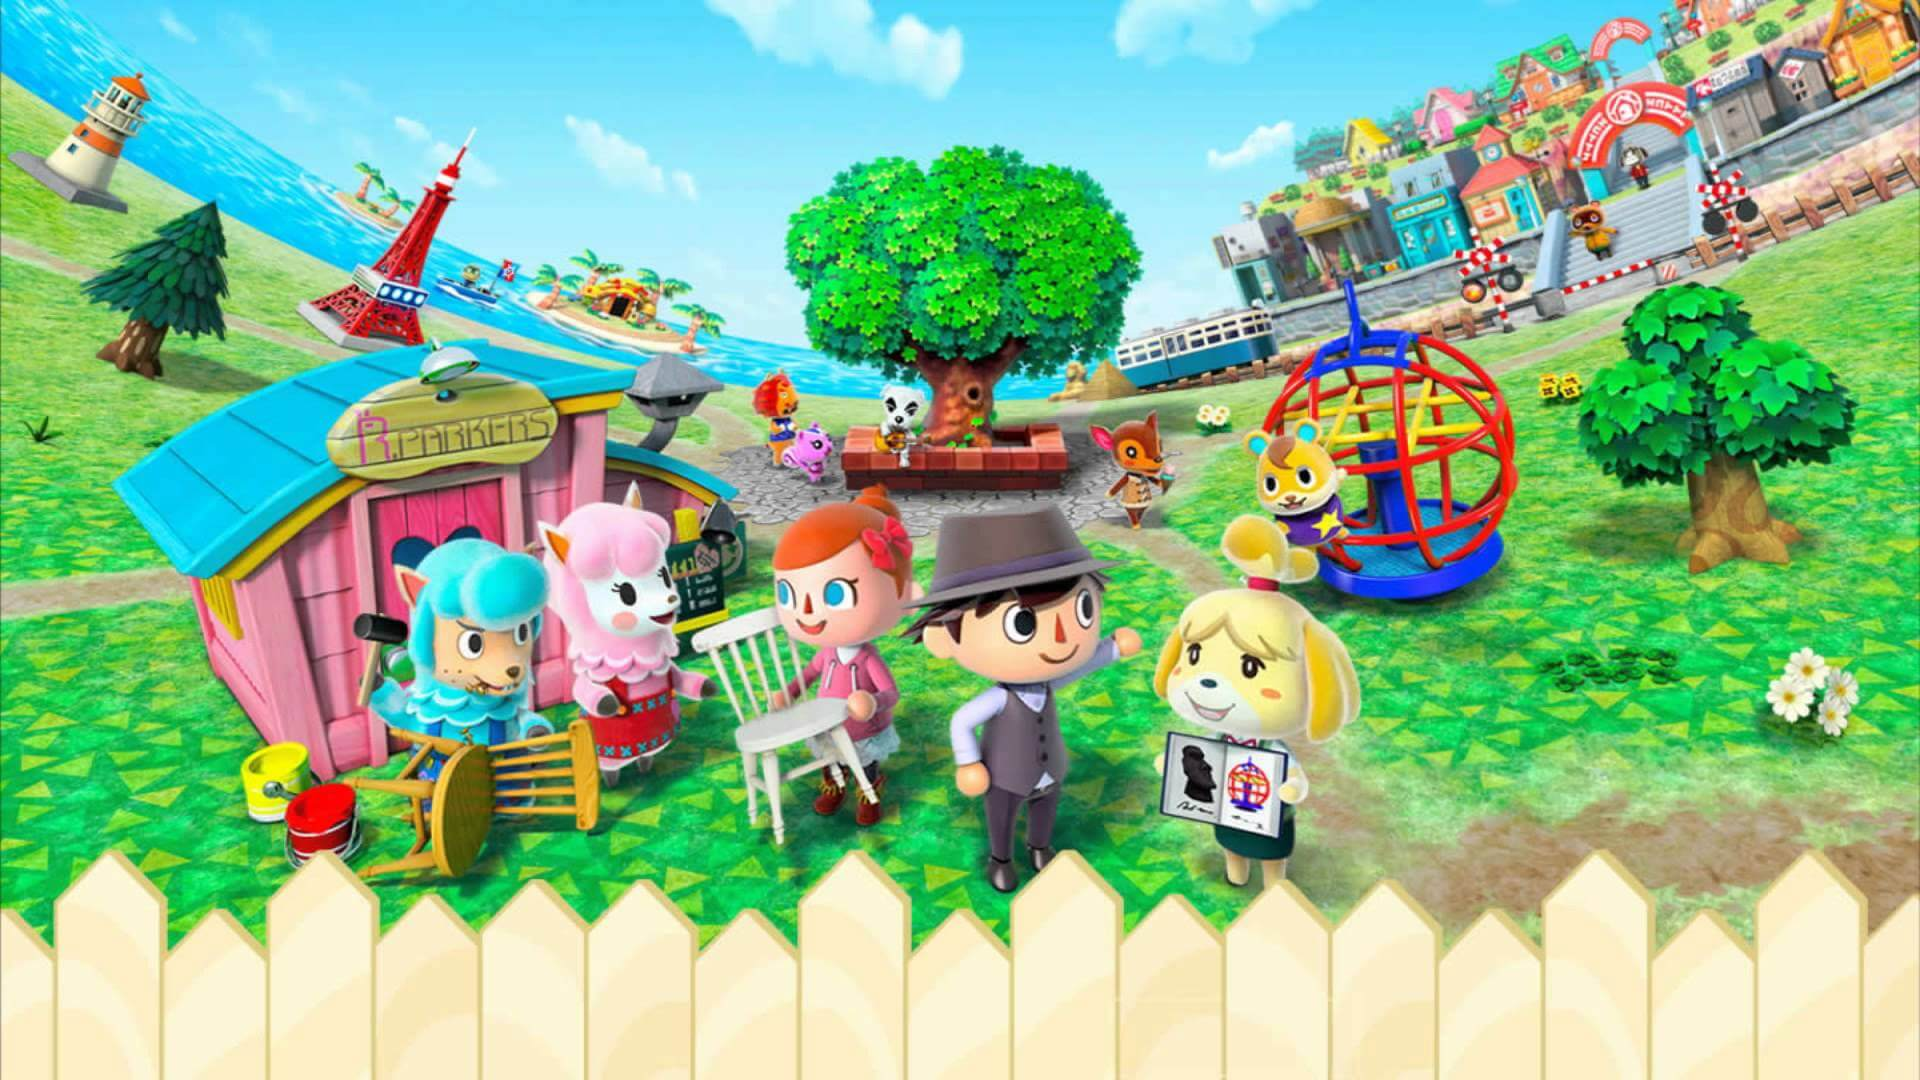 Animal Crossing and Fire Emblem Mobile Games Will Be Free-To-Play